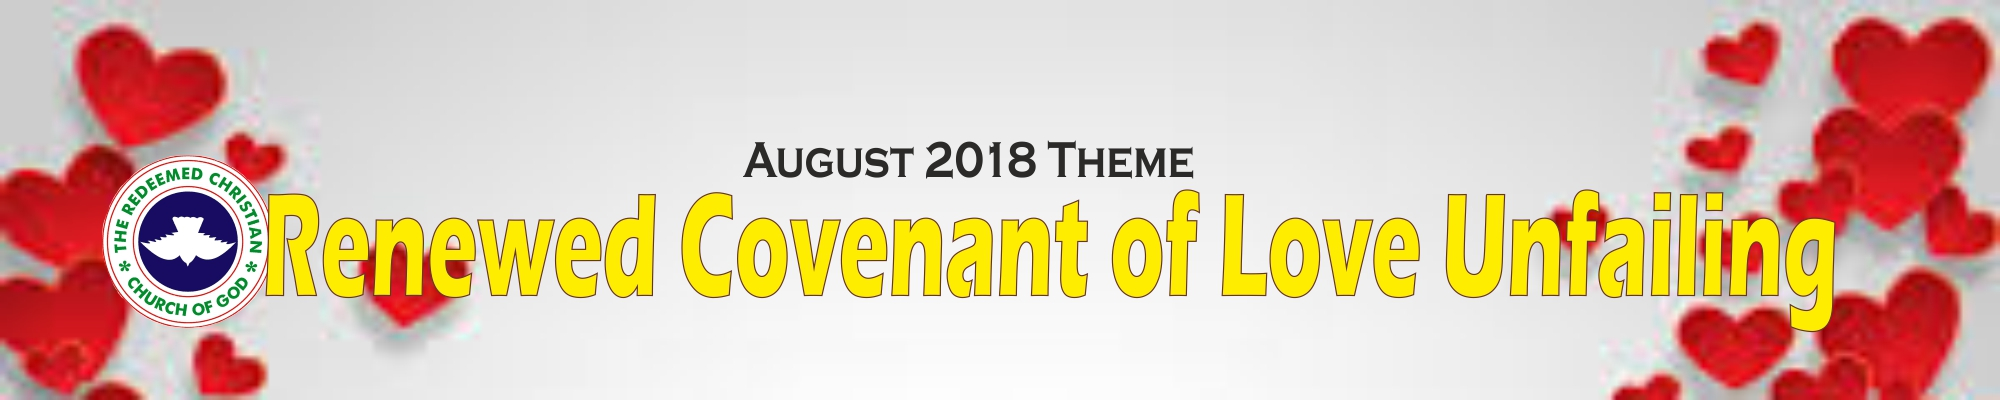 August 2018 Theme - Renewed Covenant of Love Unfailing